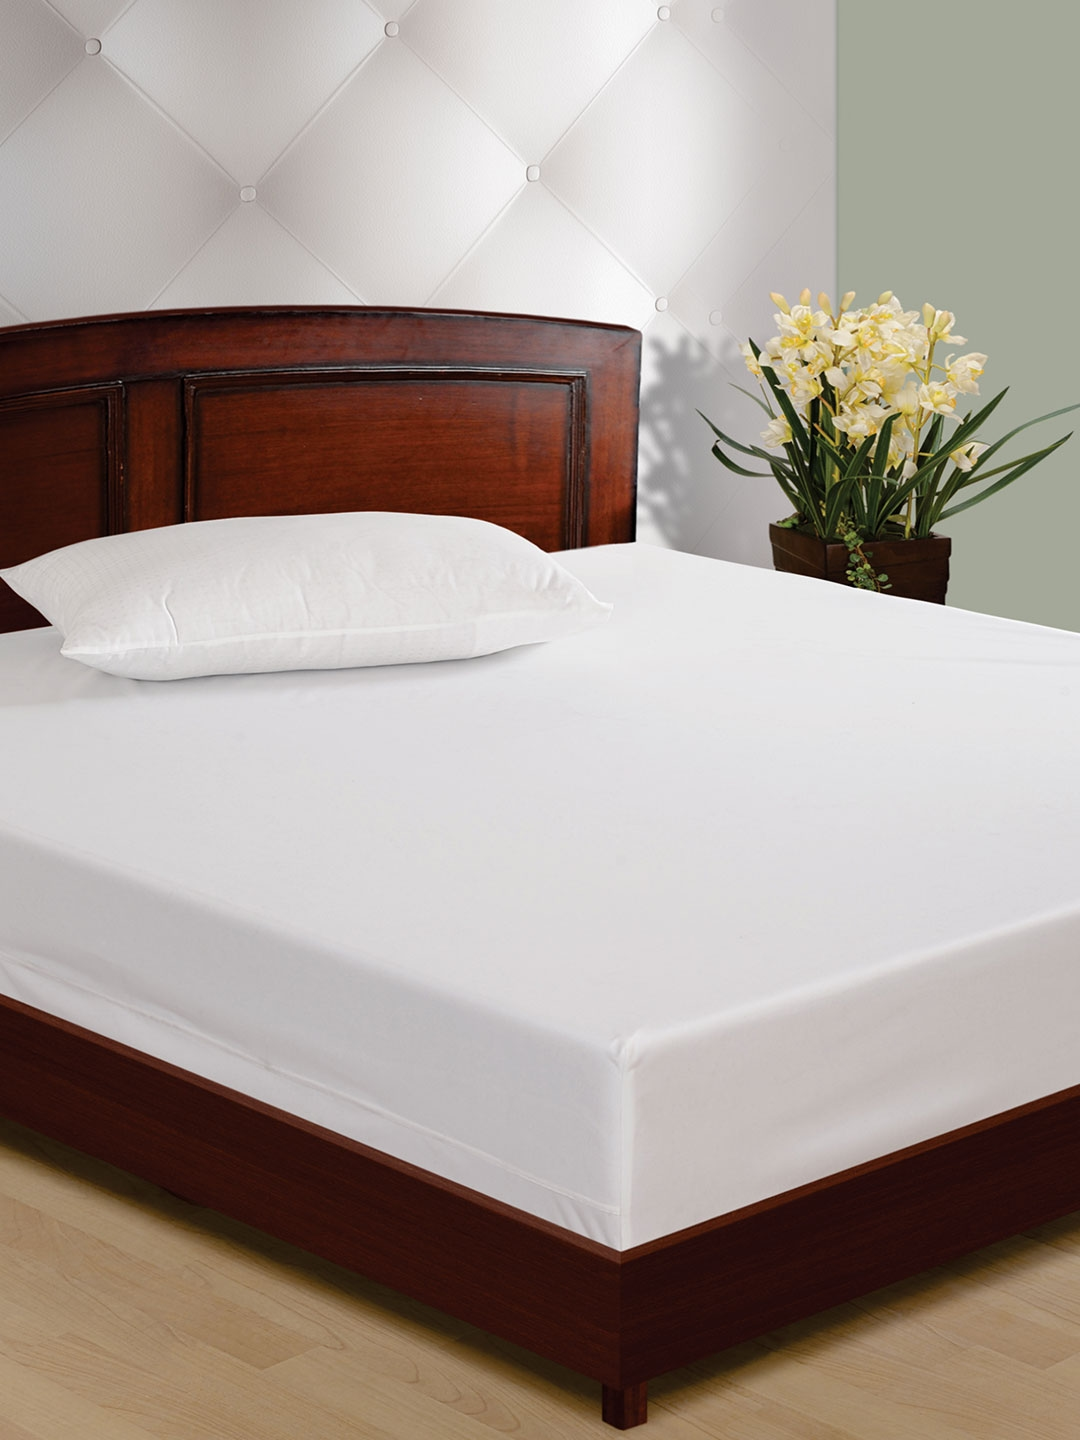 Indian modern double beds - Swayam White Double Bed Mattress Protector